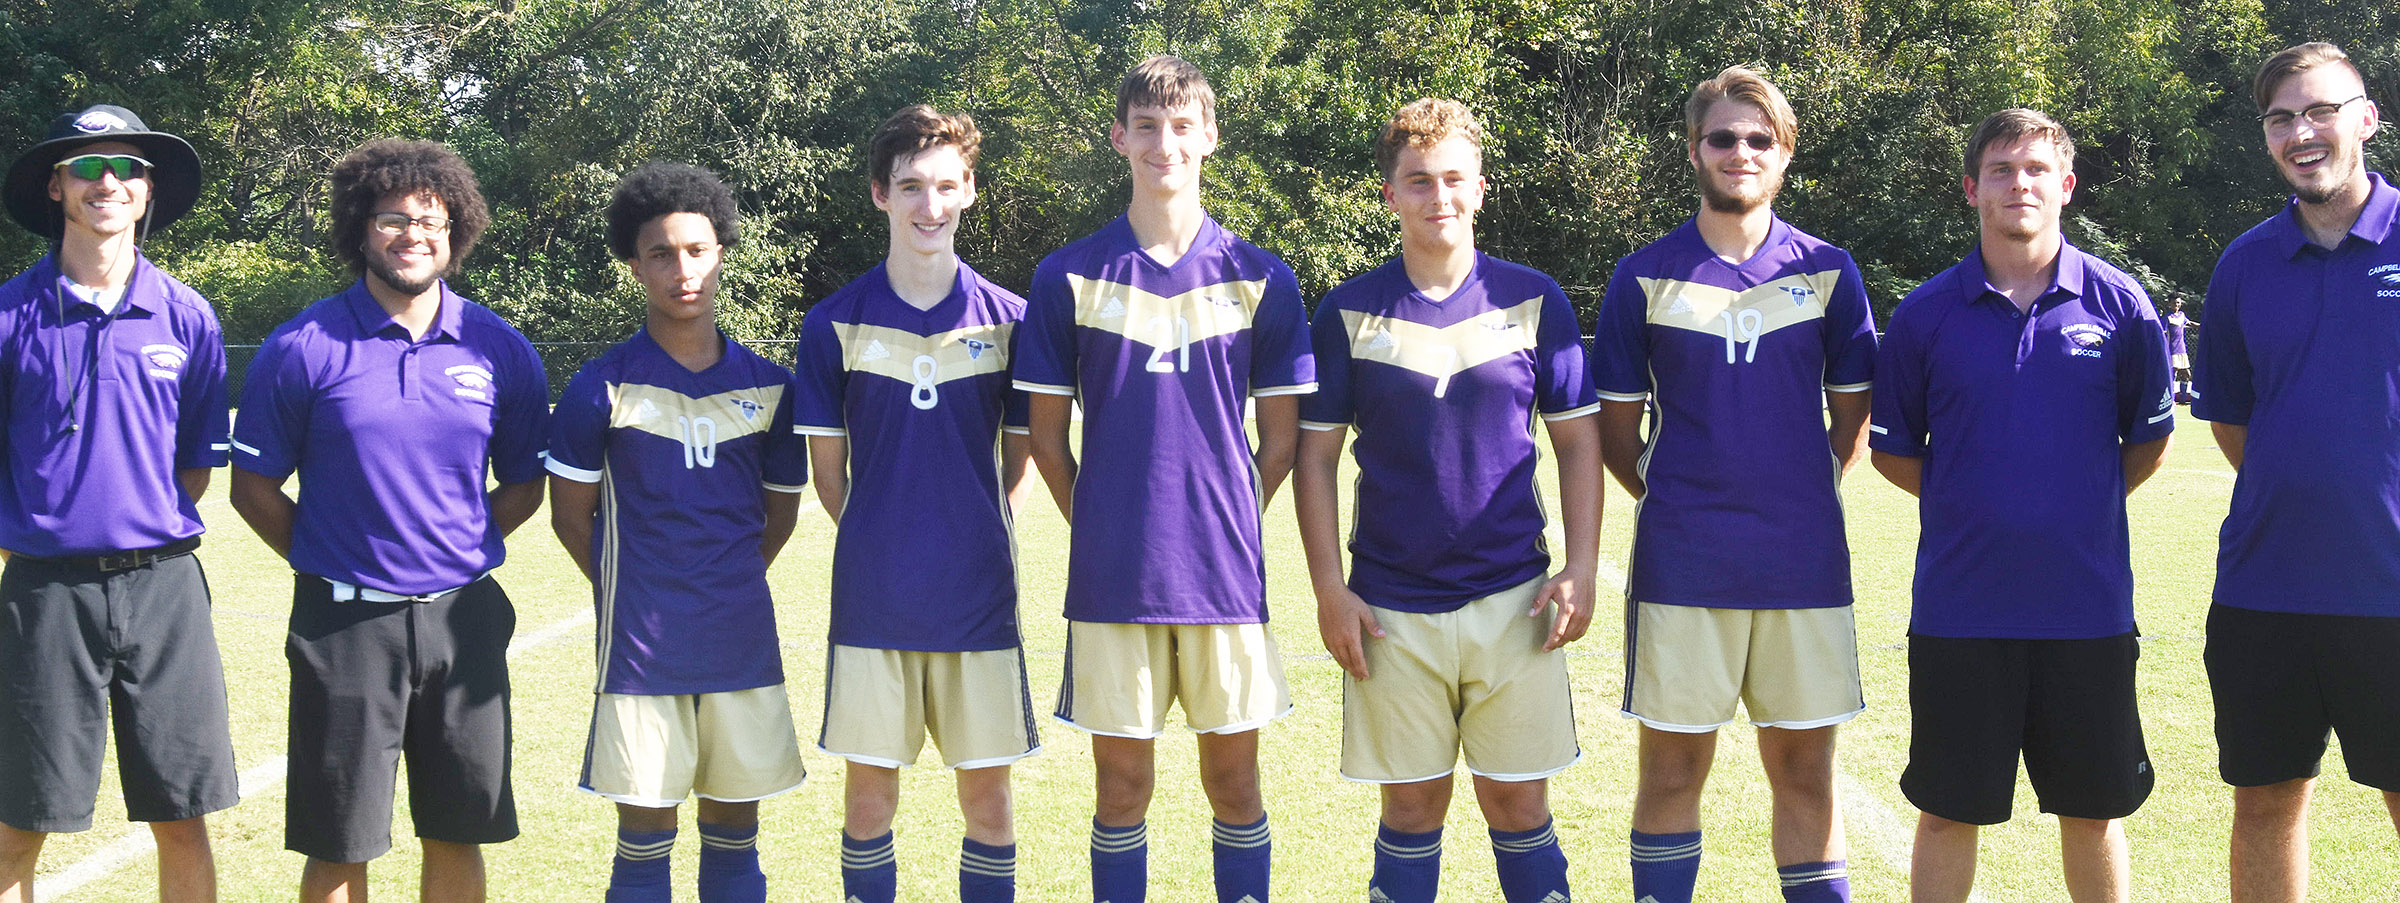 CHS senior soccer players are honored. From left are head coach Bradley Harris, assistant coach Malique Spaulding, players Daniel Johnson, Ian McAninch, Evan McAninch, Brody Weeks and Keidlan Boils and assistant coaches Owen Weeks and Weston Horn.